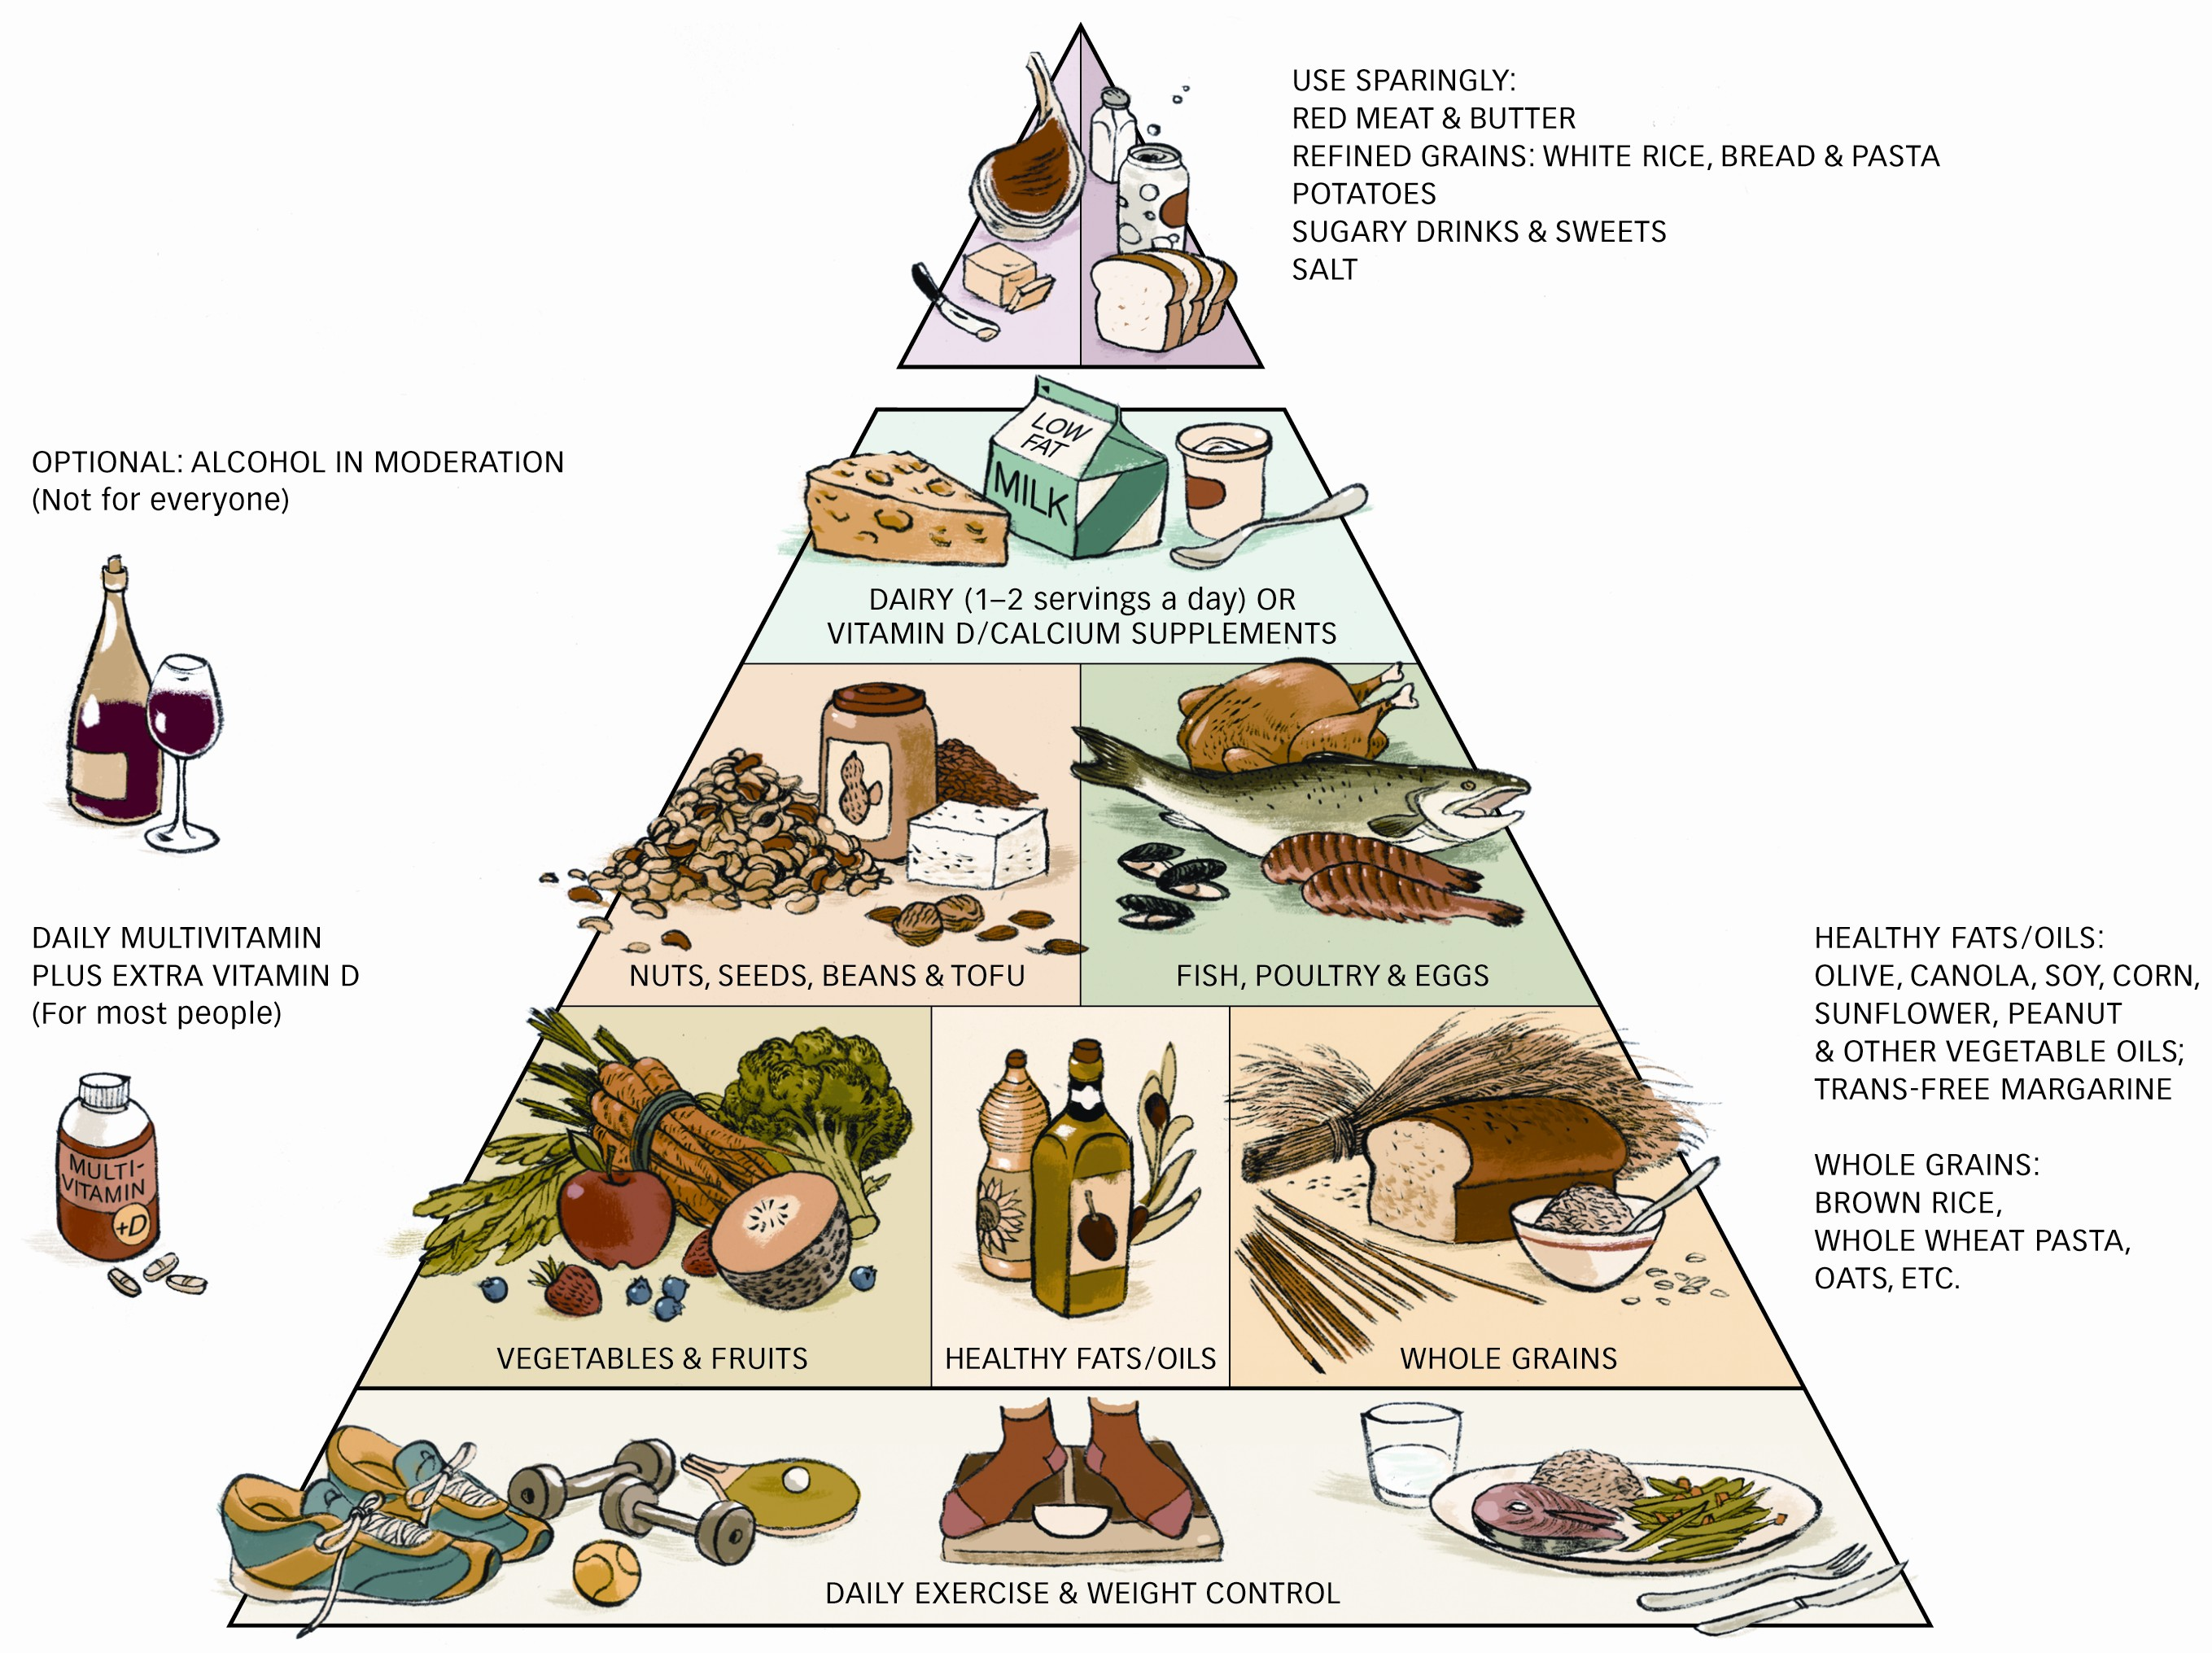 healthy food pyramid presents healthy choice of food for your everyday ...